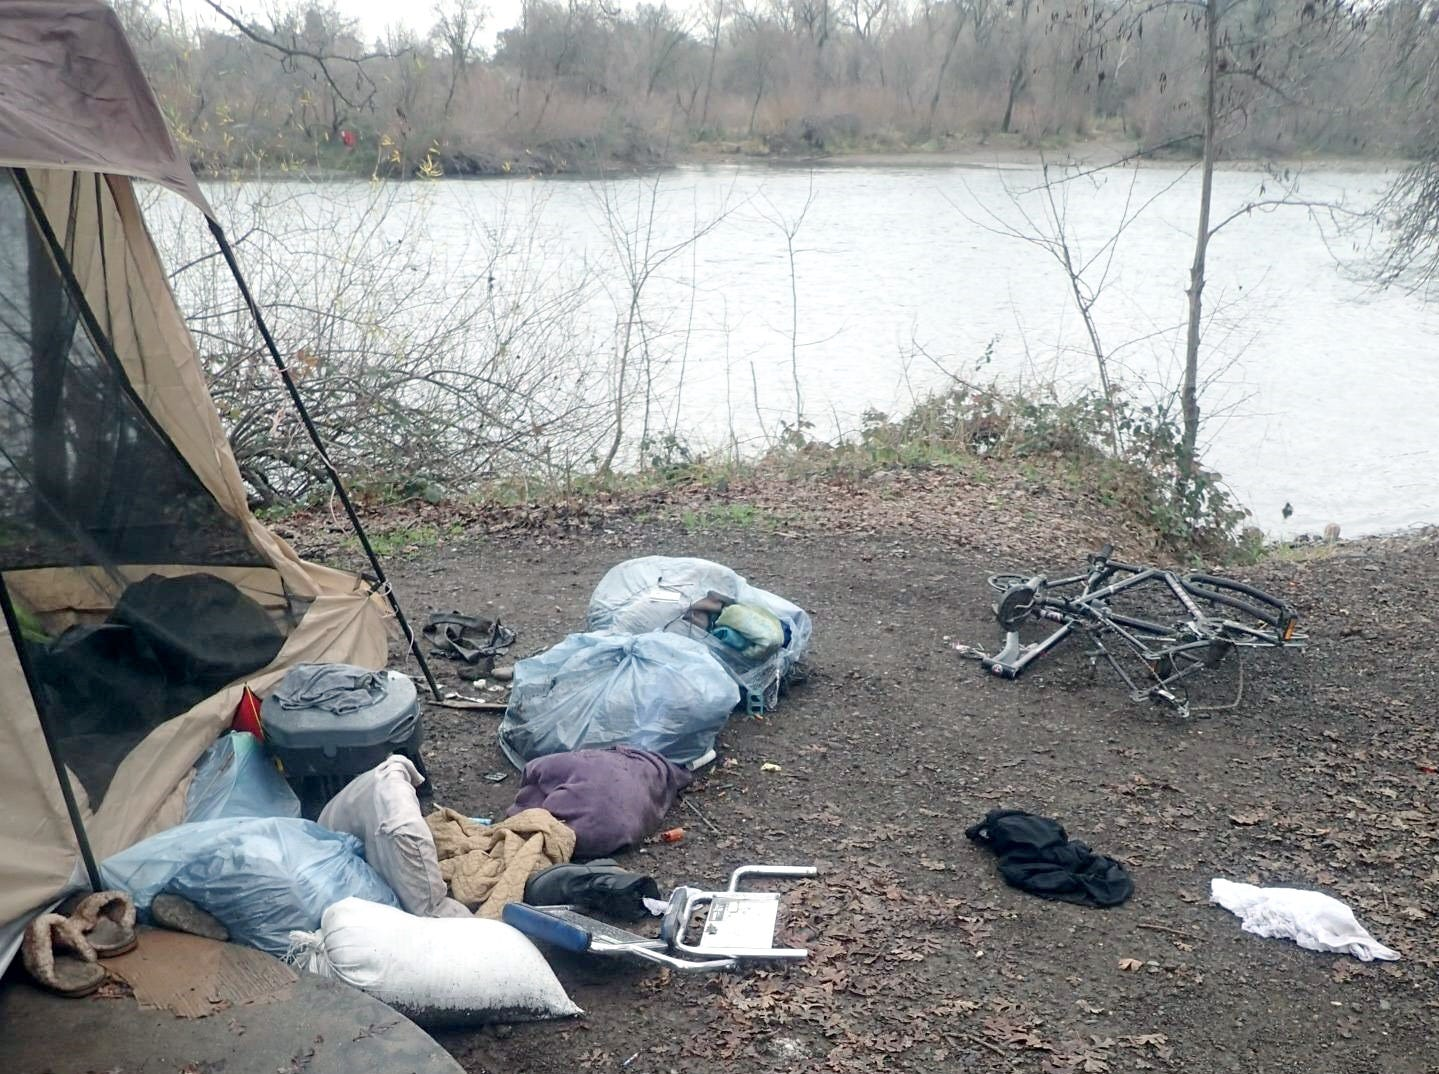 Cleanup crews removed about 3,400 pounds of trash next to the Sacramento River on Jan. 8, 2019, in Redding.